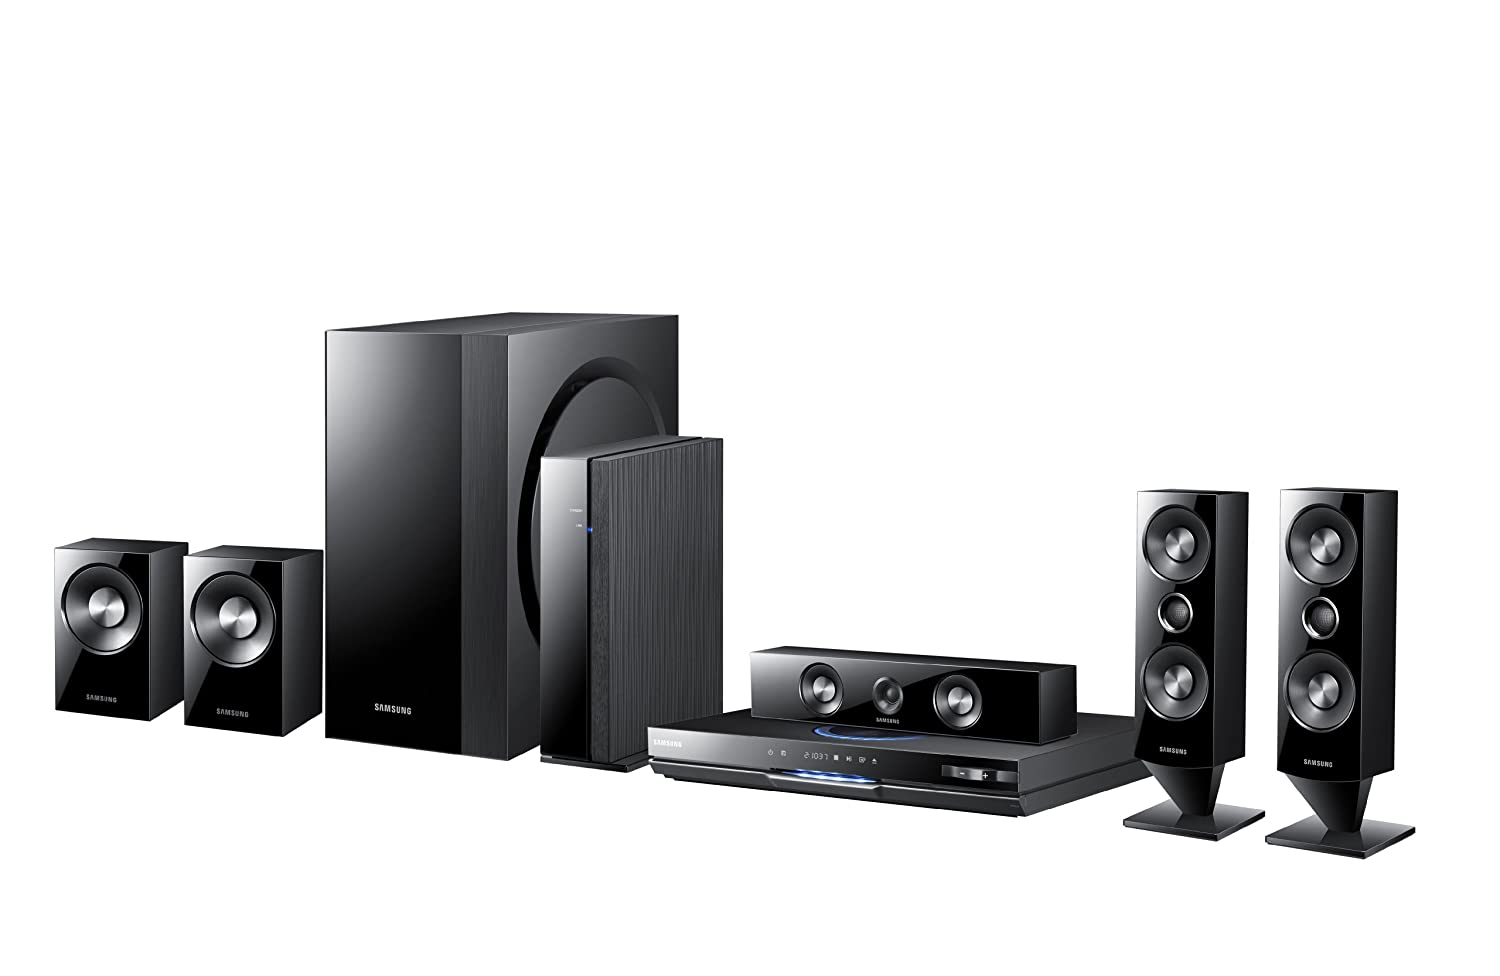 Amazoncom Samsung HTD6500W 51 CH 3D BluRay Home Theater System